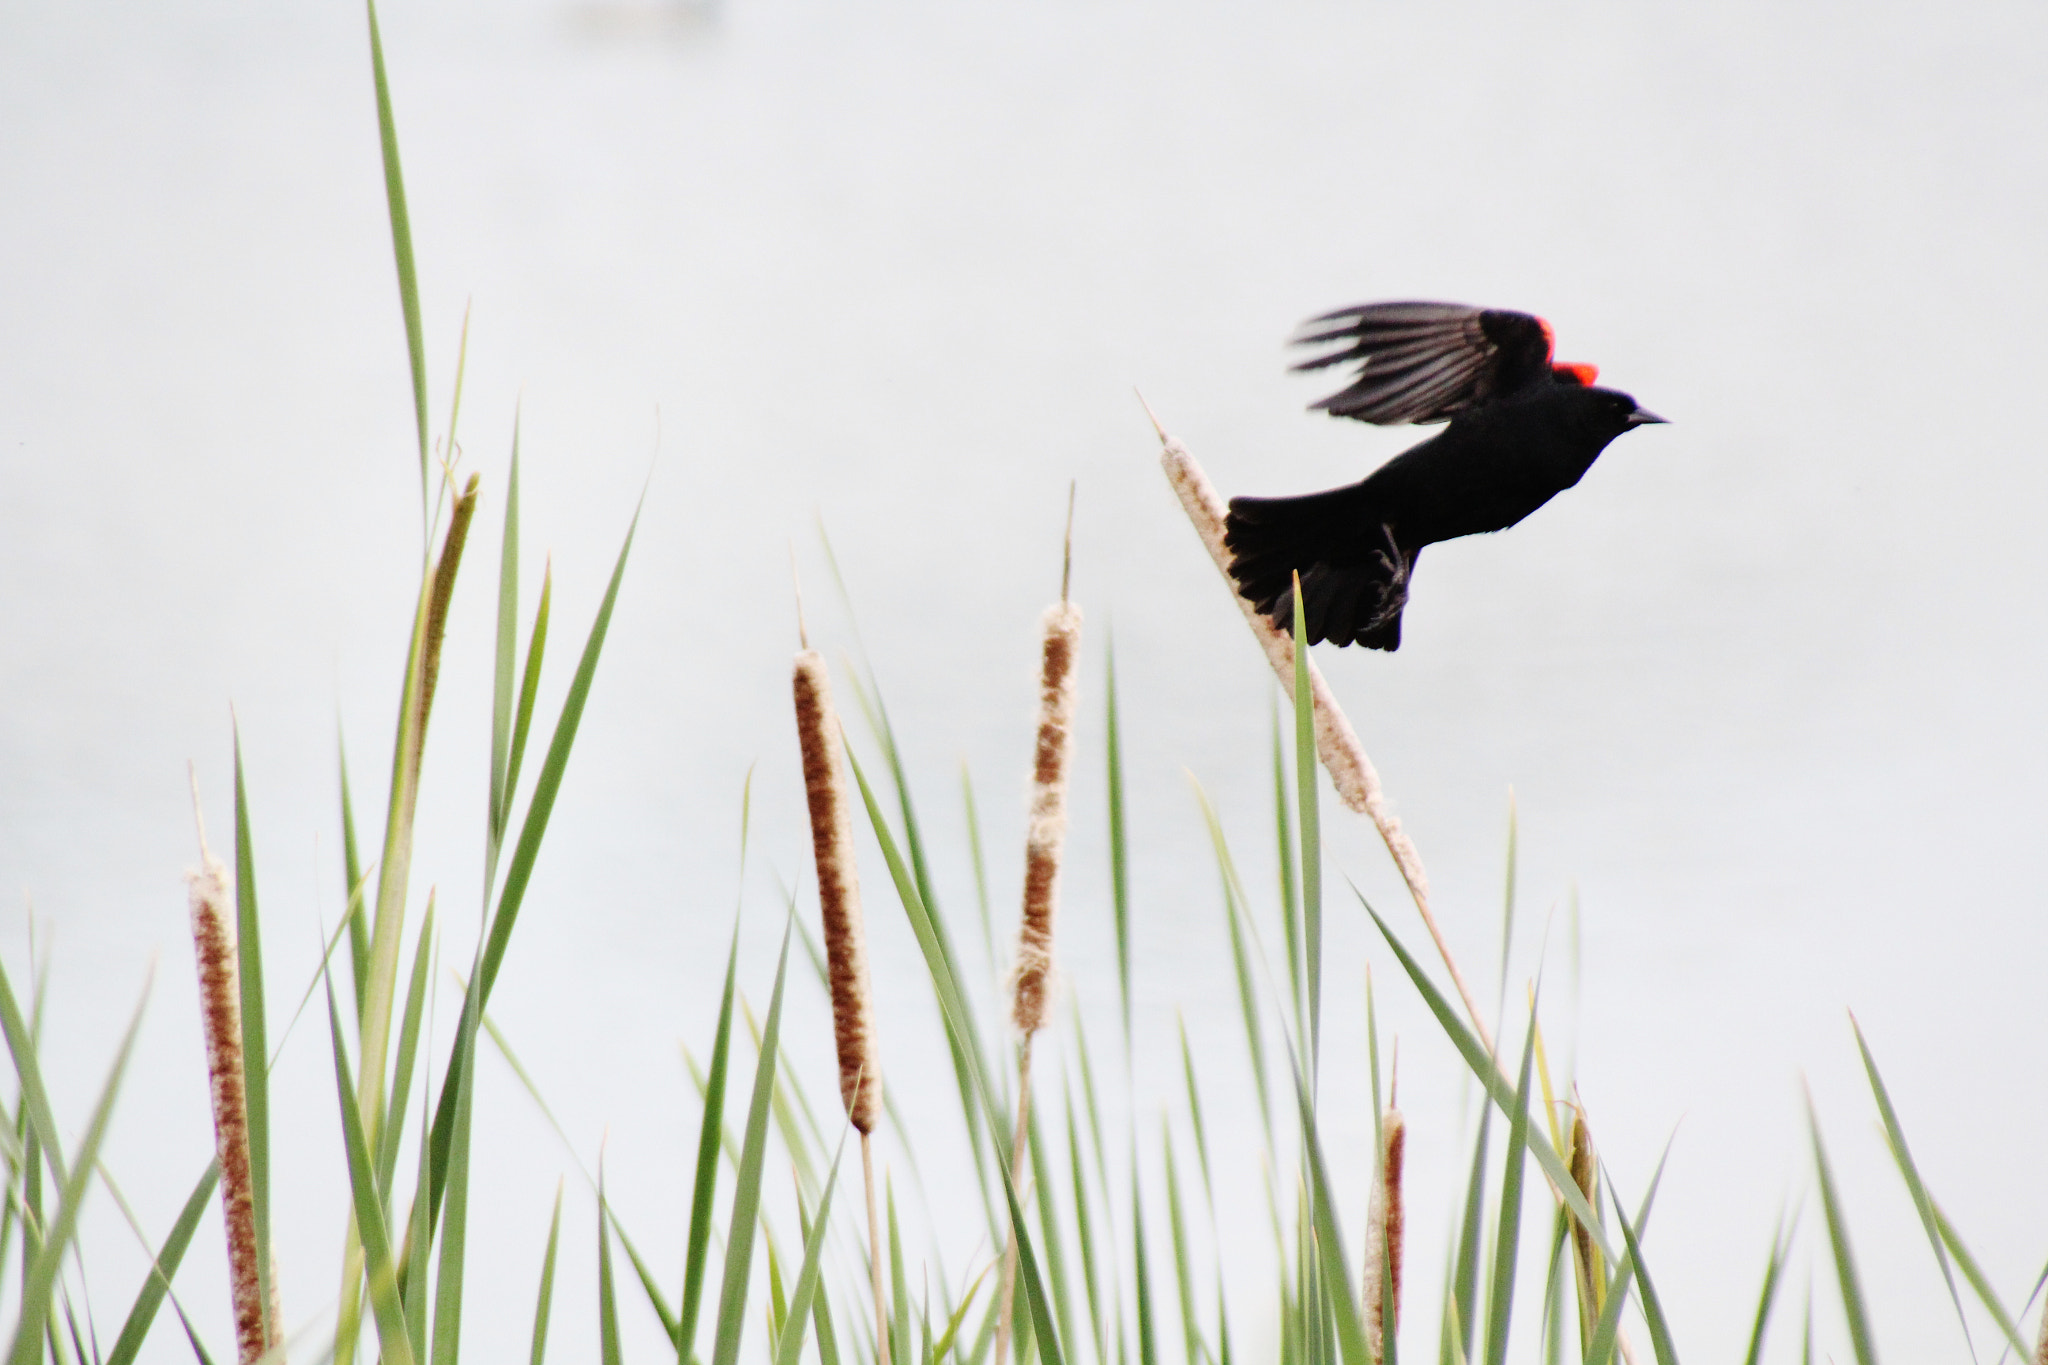 Photograph Red Winged Black Bird by Ryan Dean Kitibutr on 500px